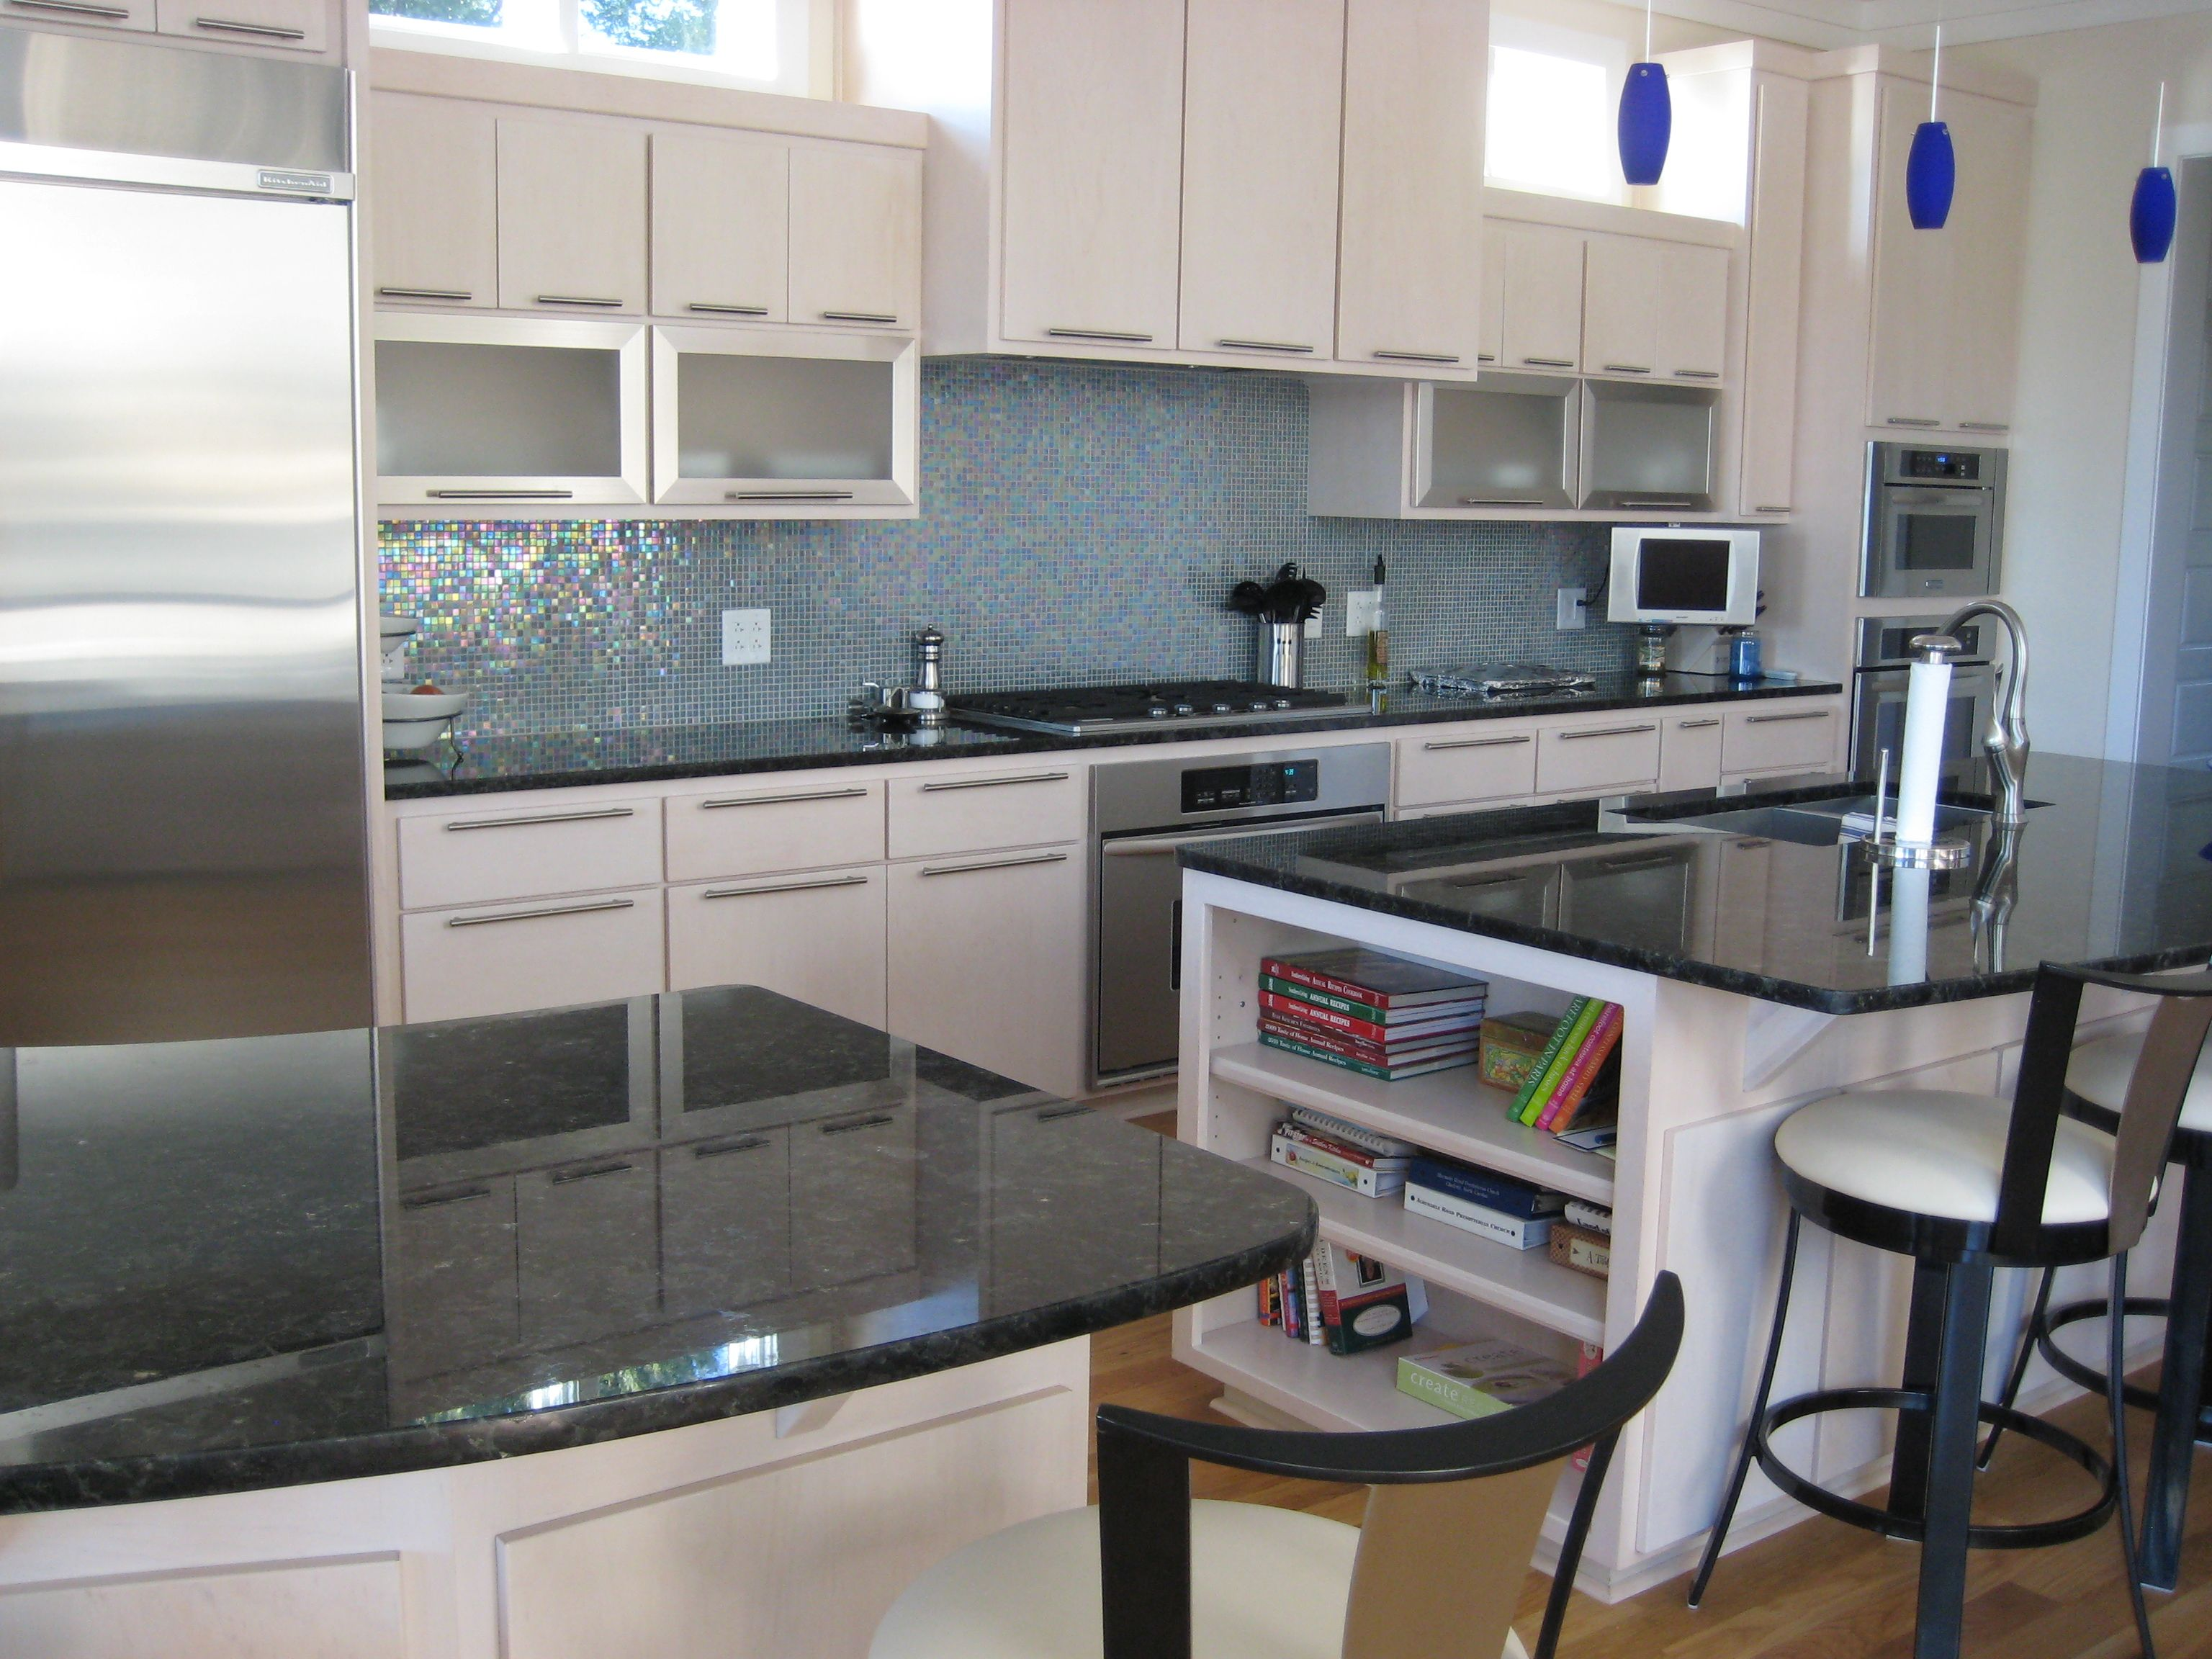 Contemporary Kitchen Featuring Gourmet Appliances, Volga Blue Granite,  Irridescent Glass Tile Backsplash, Lots